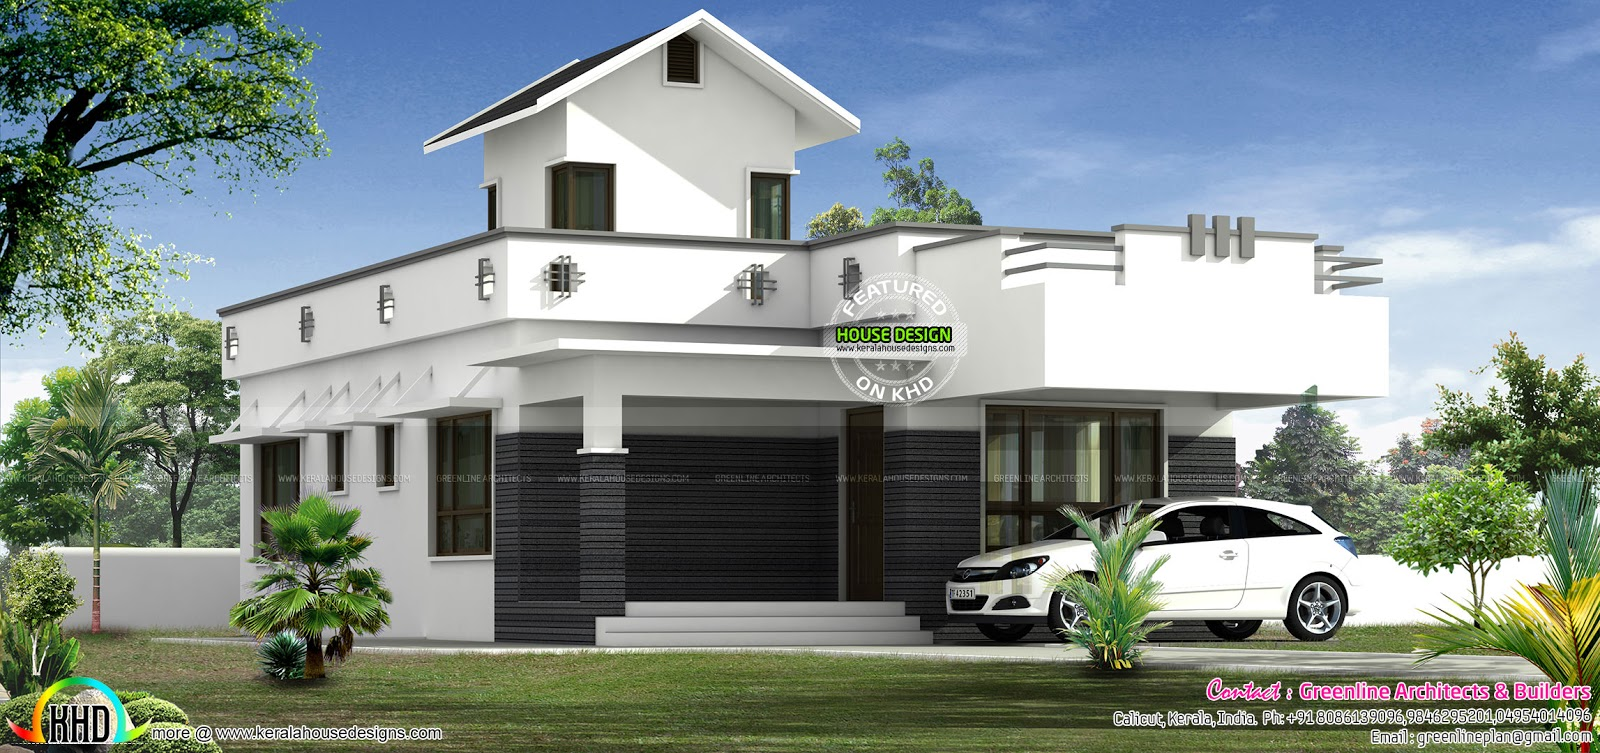 1000 sq ft 15 lakhs budget home kerala home design and for House plans below 1000 sq ft kerala